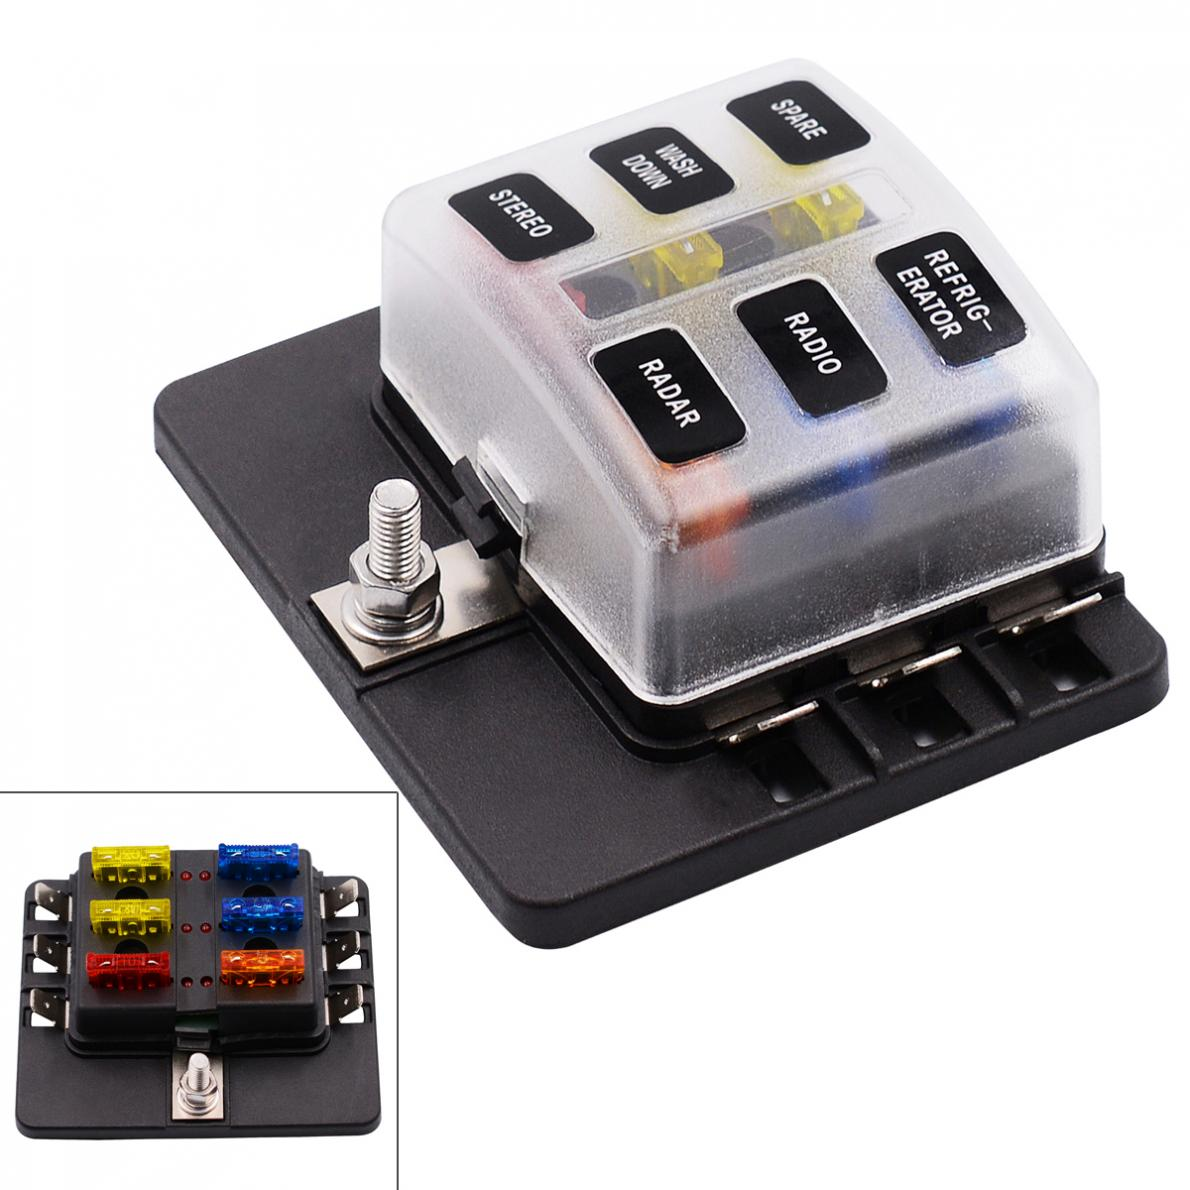 medium resolution of 6 way 12v 24v blade fuse box holder with led warning light kit for car boat marine trike